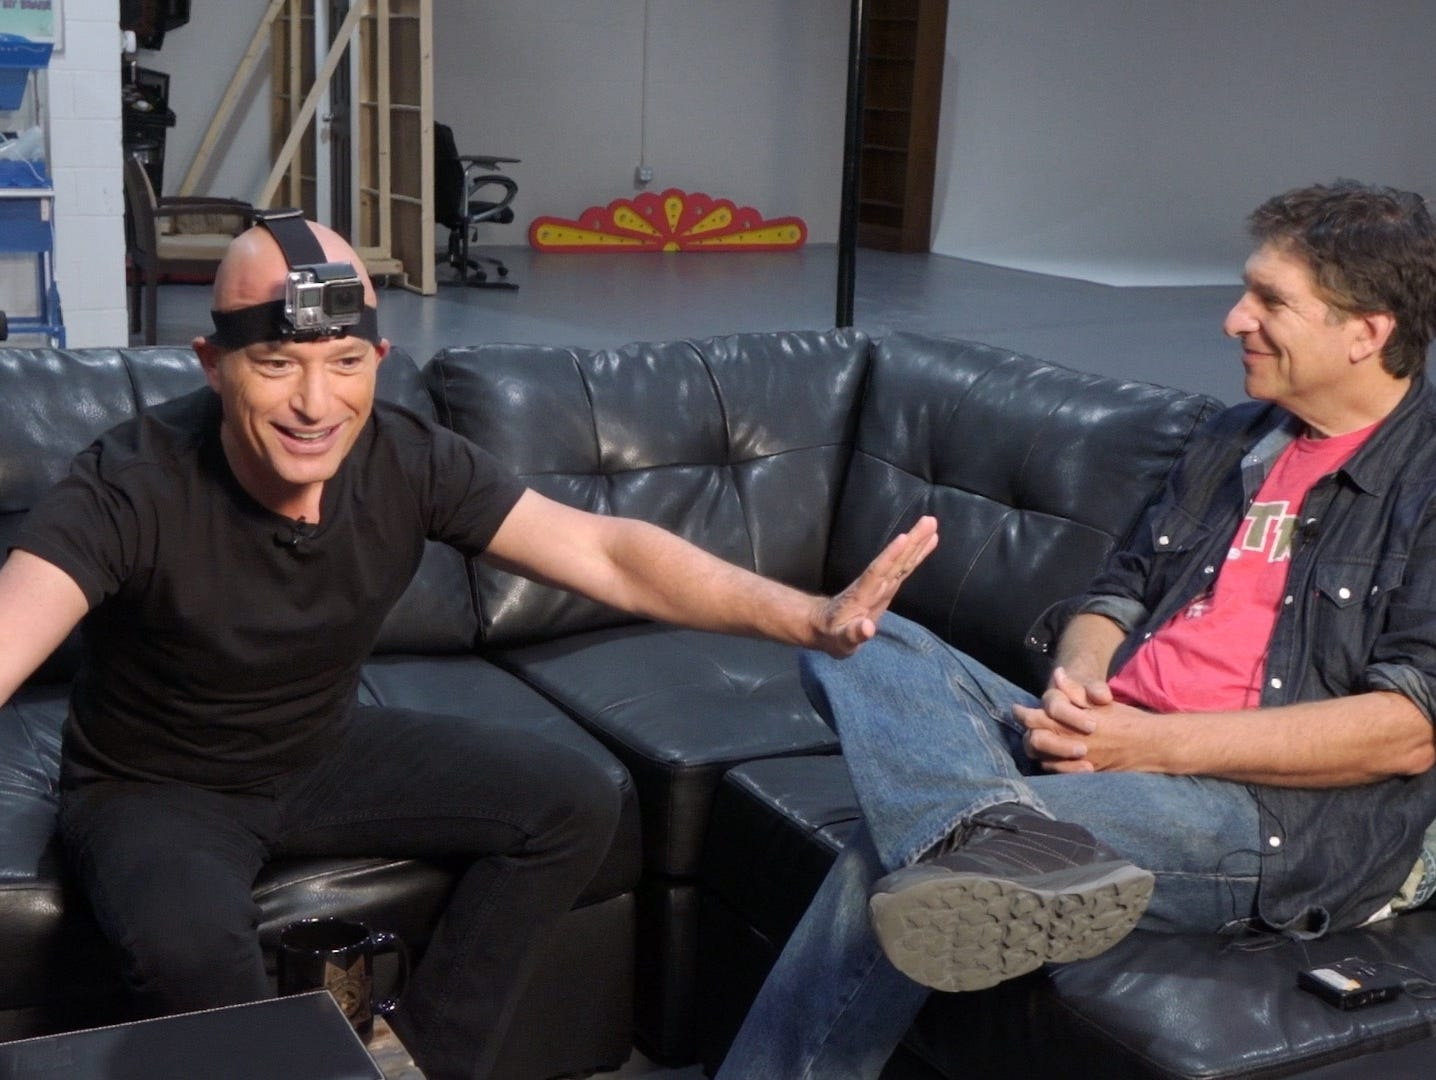 Comedian Howie Mandel dons a GoPro during a celebrity #TalkingTech interview.